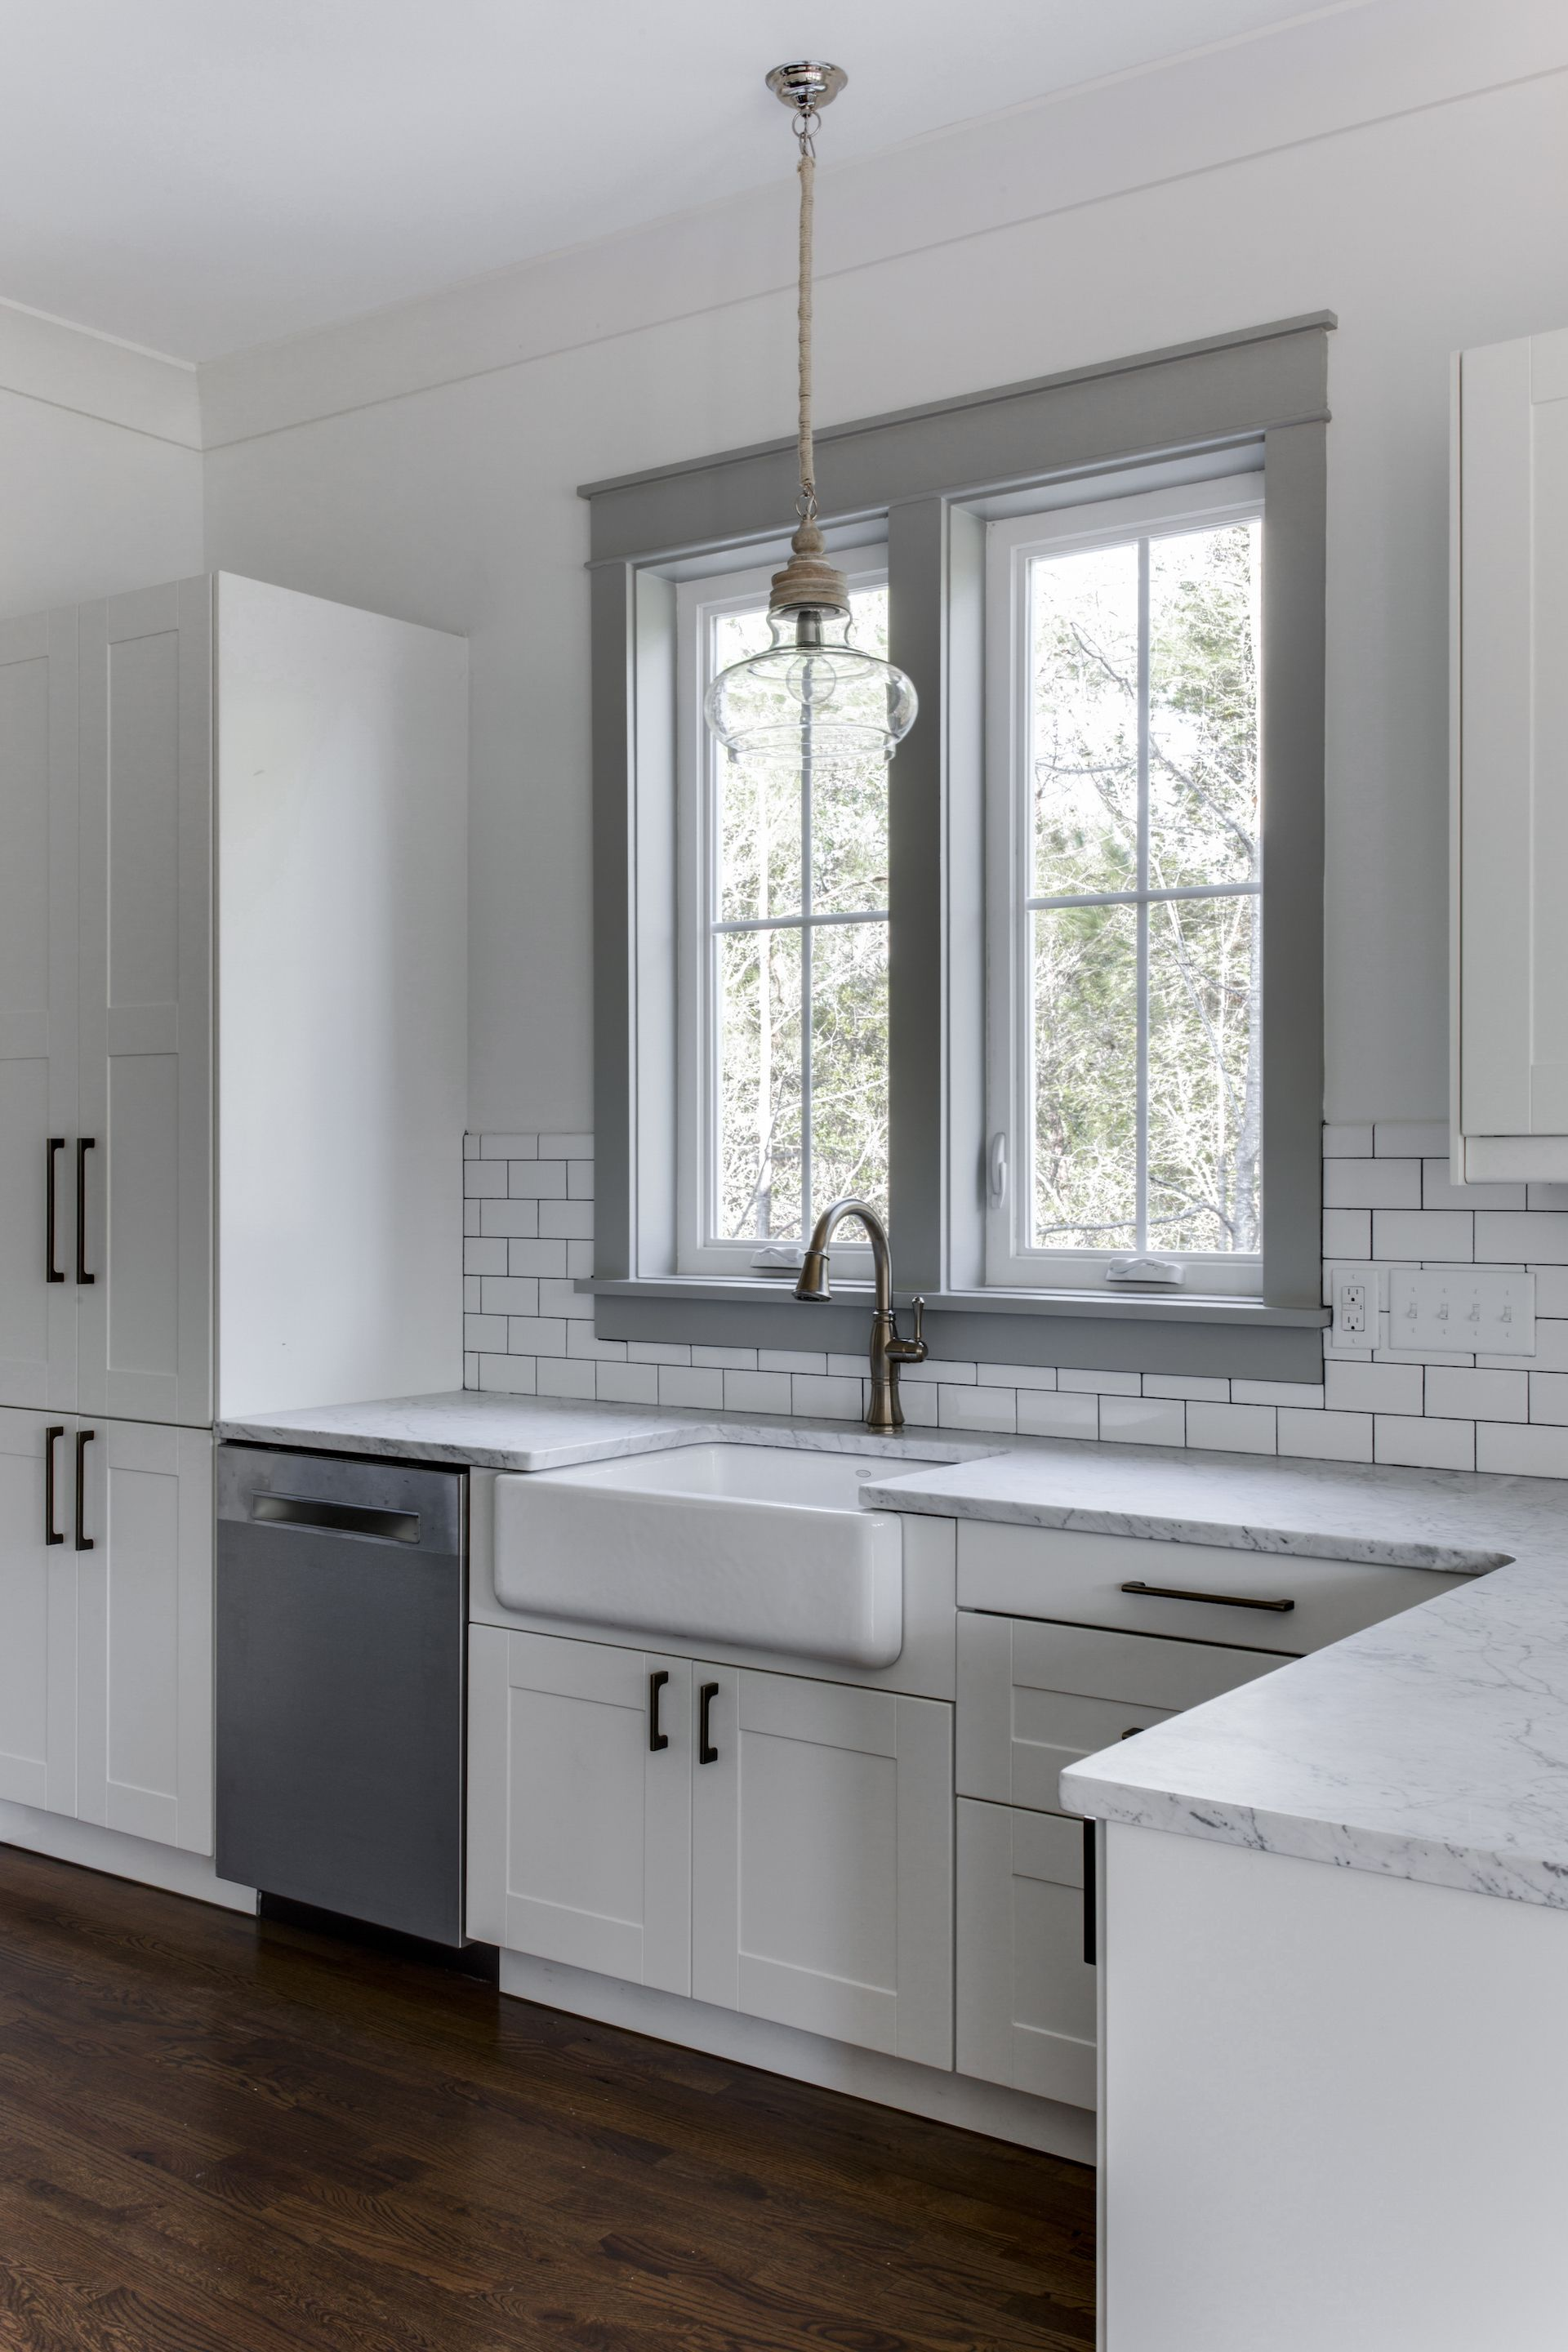 Love The White Cabinets Farmhouse Sink And Gray Painted Window Trim In This Kitchen Barrow Building Gr New Kitchen Cabinets Kitchen Design Kitchen Renovation